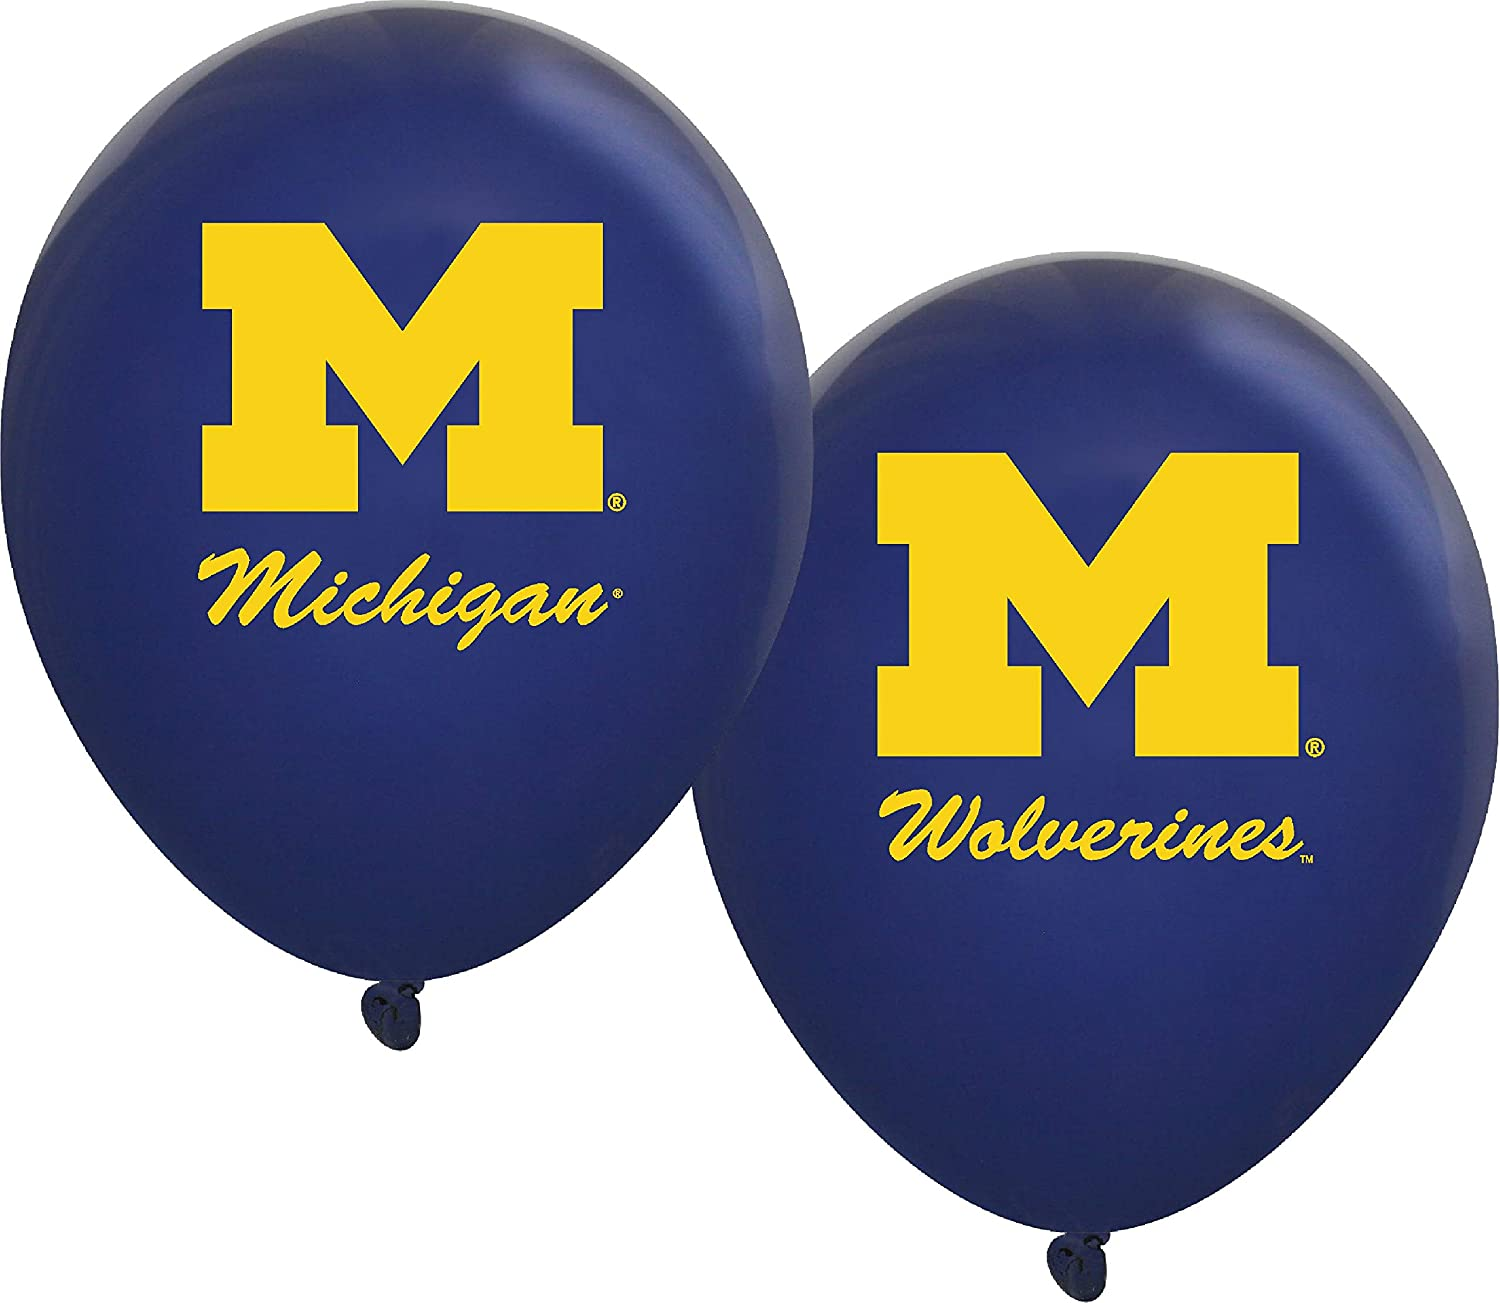 "Michigan Wolverines 11"" Balloons - 10/pkg."